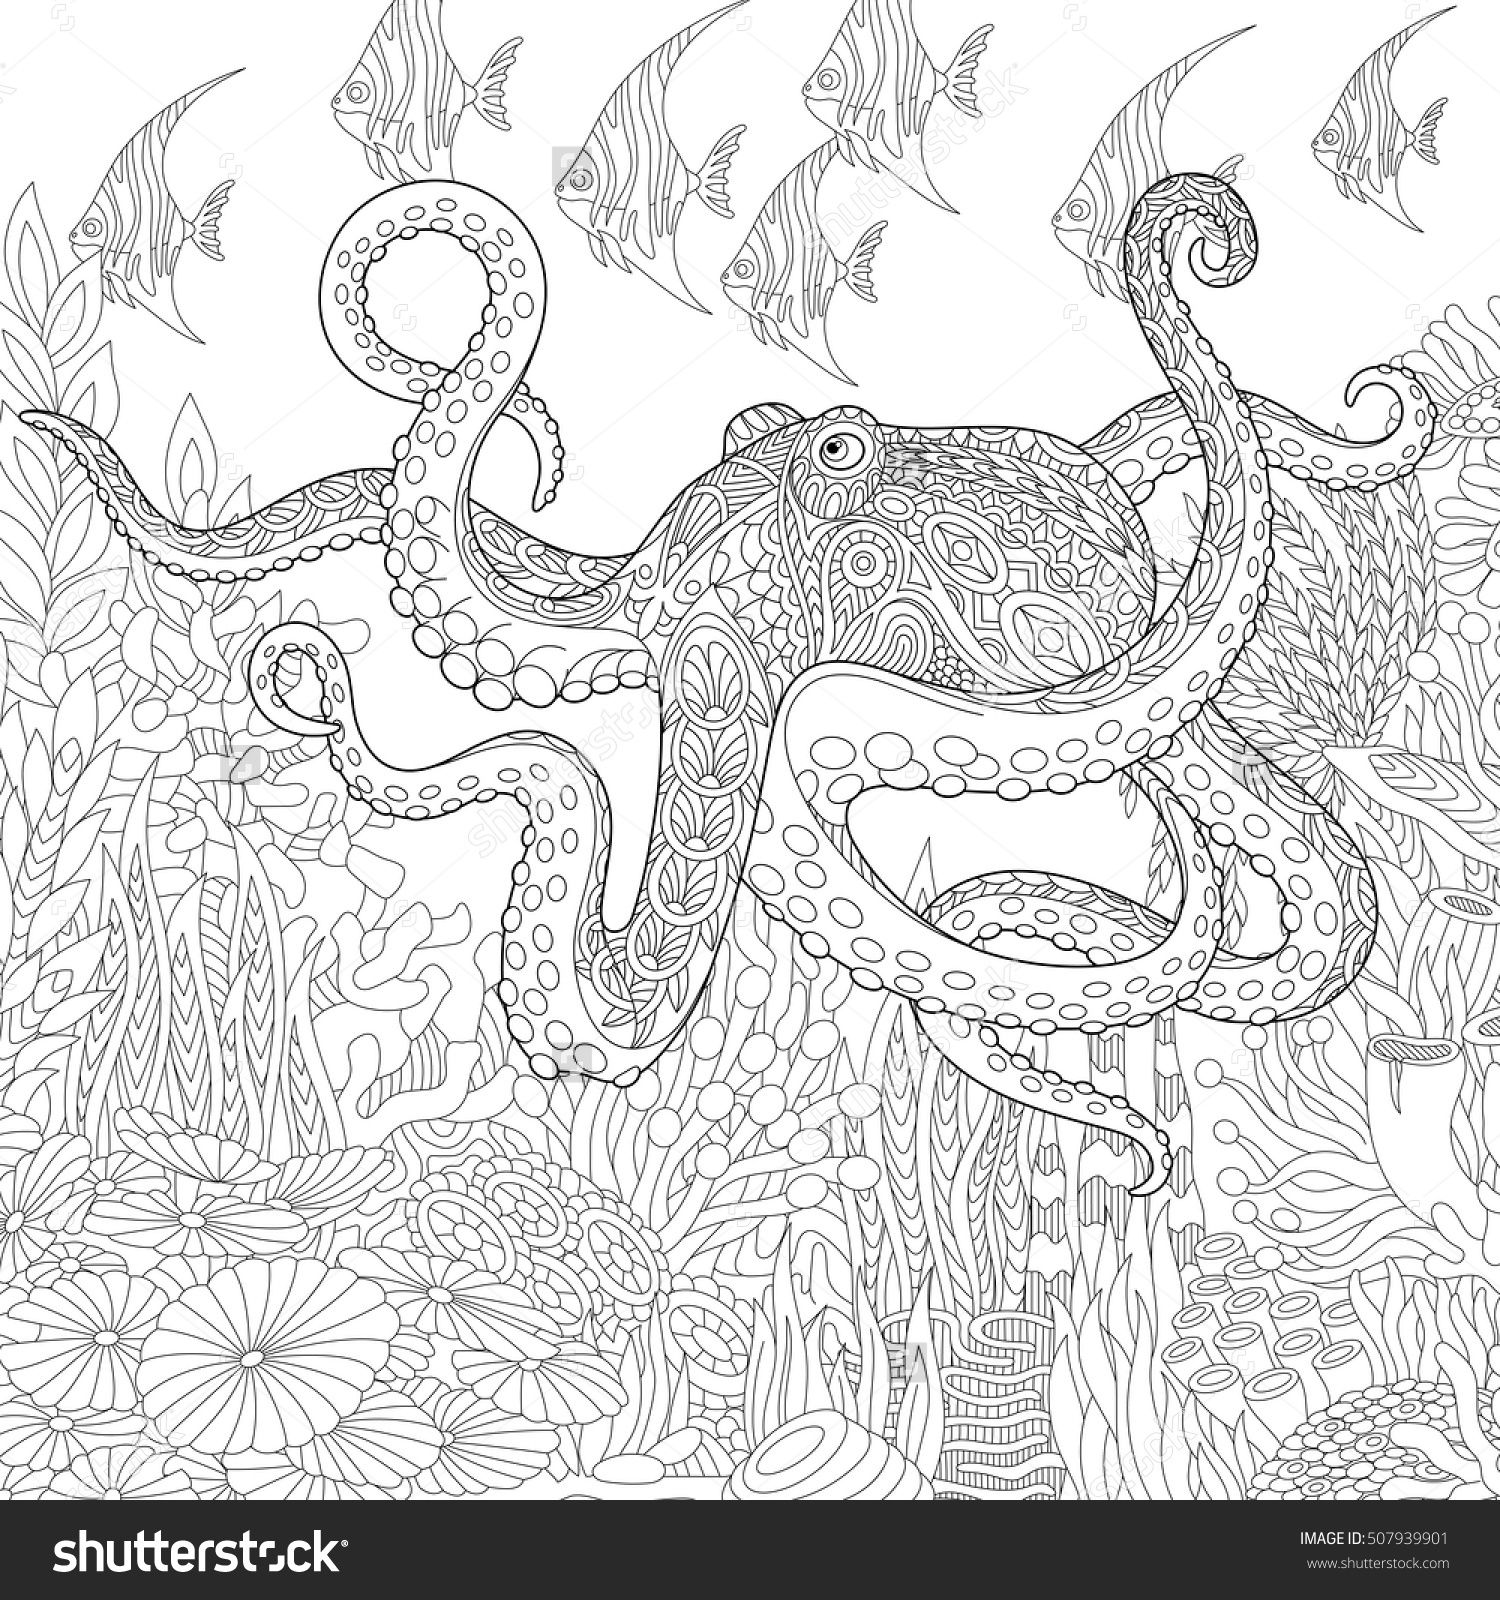 Stylized composition of giant octopus, tropical fish, underwater ...